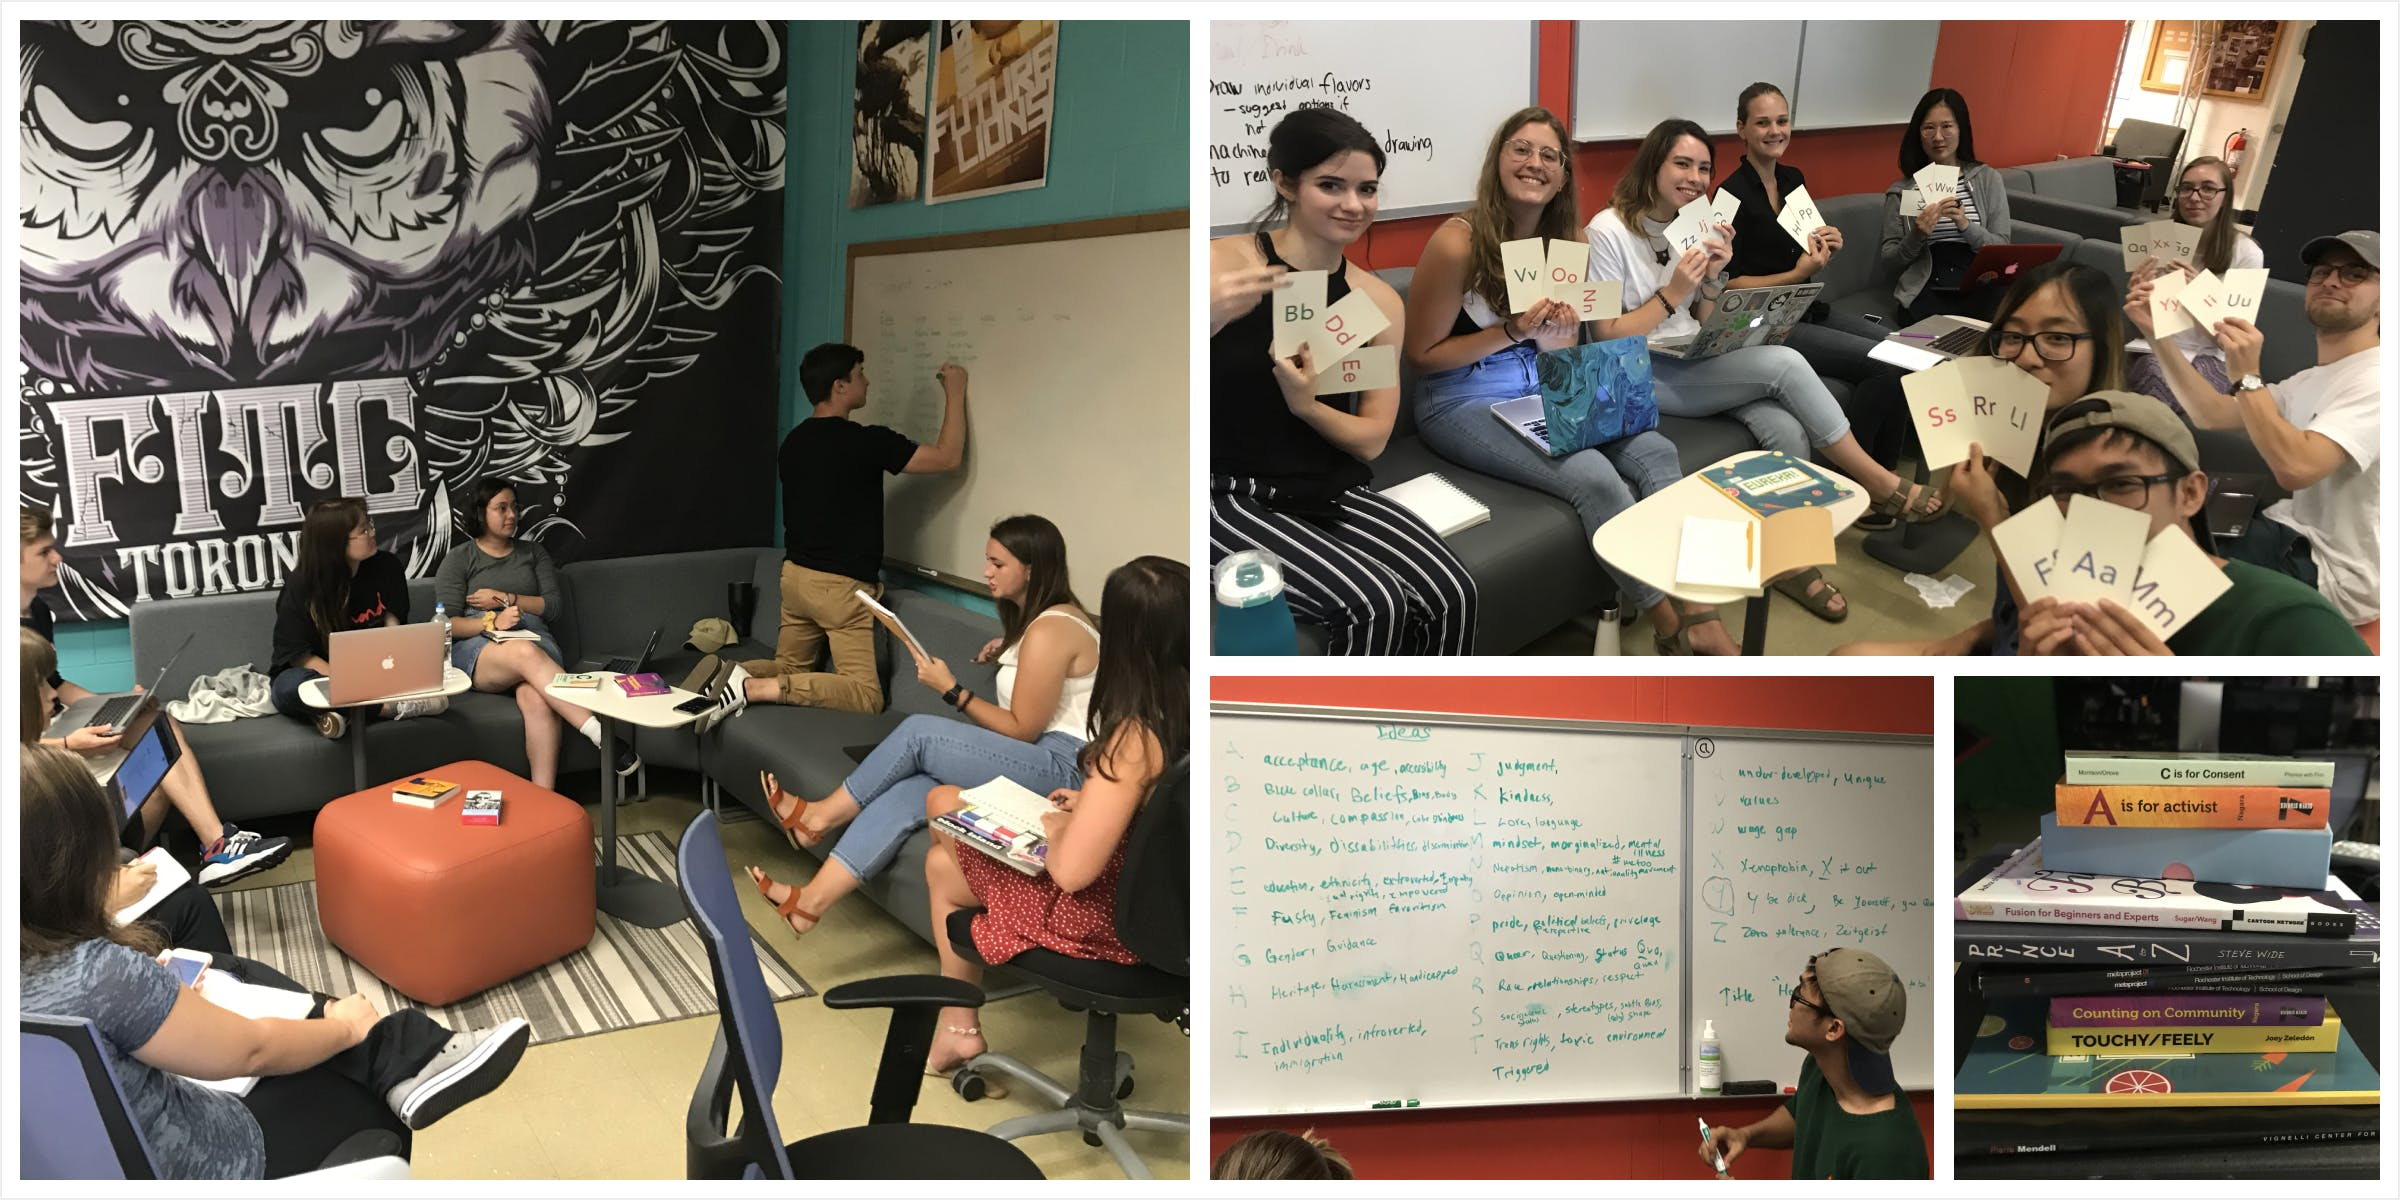 A grid of photos. Students in a space on couches with a white board writing down ideas. Students holding up lettered cards, and a pile of books.